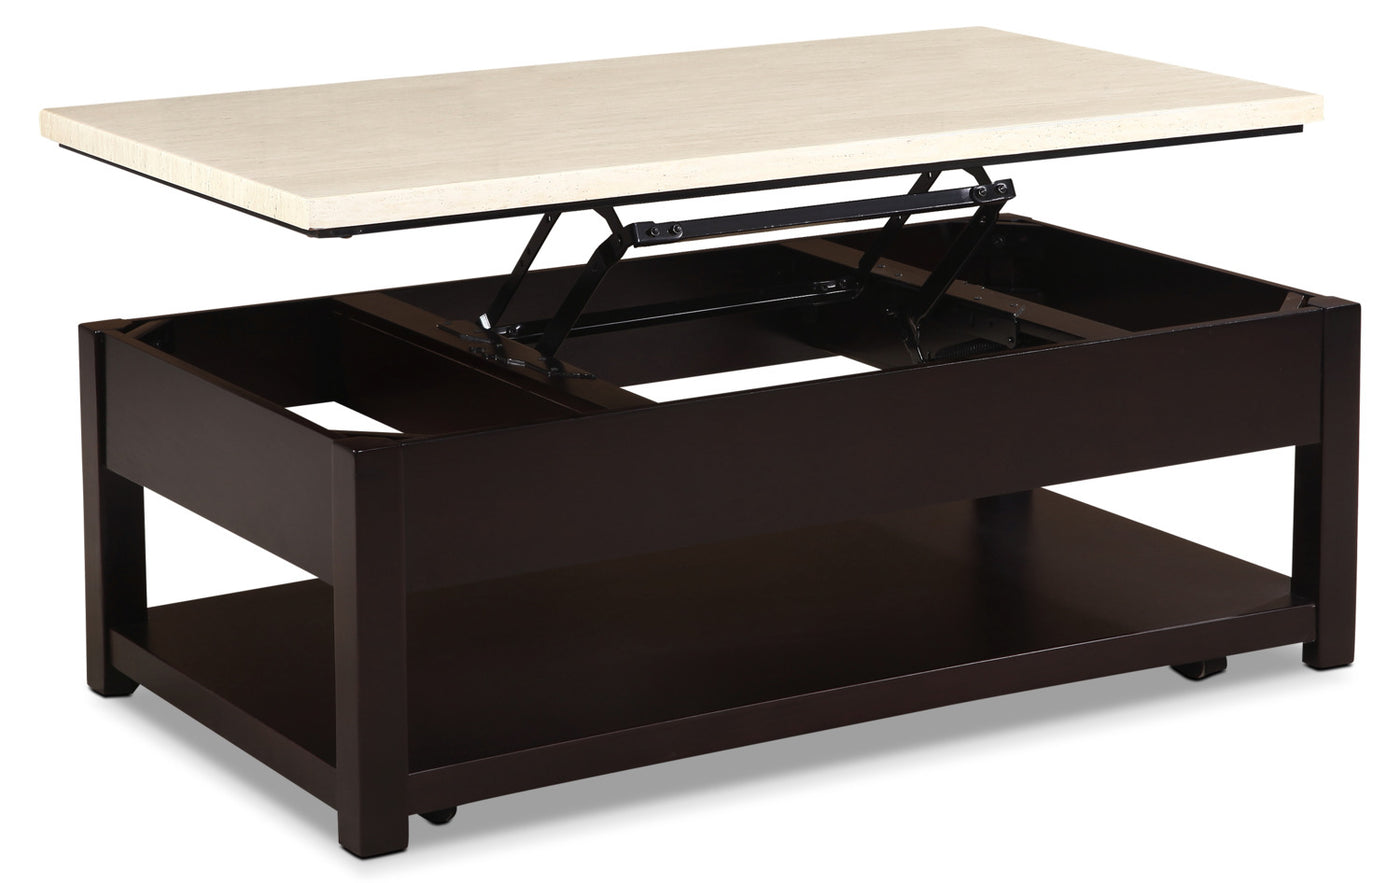 Sicily Coffee Table With Lift Top And Casters Beige The Brick [ 883 x 1400 Pixel ]